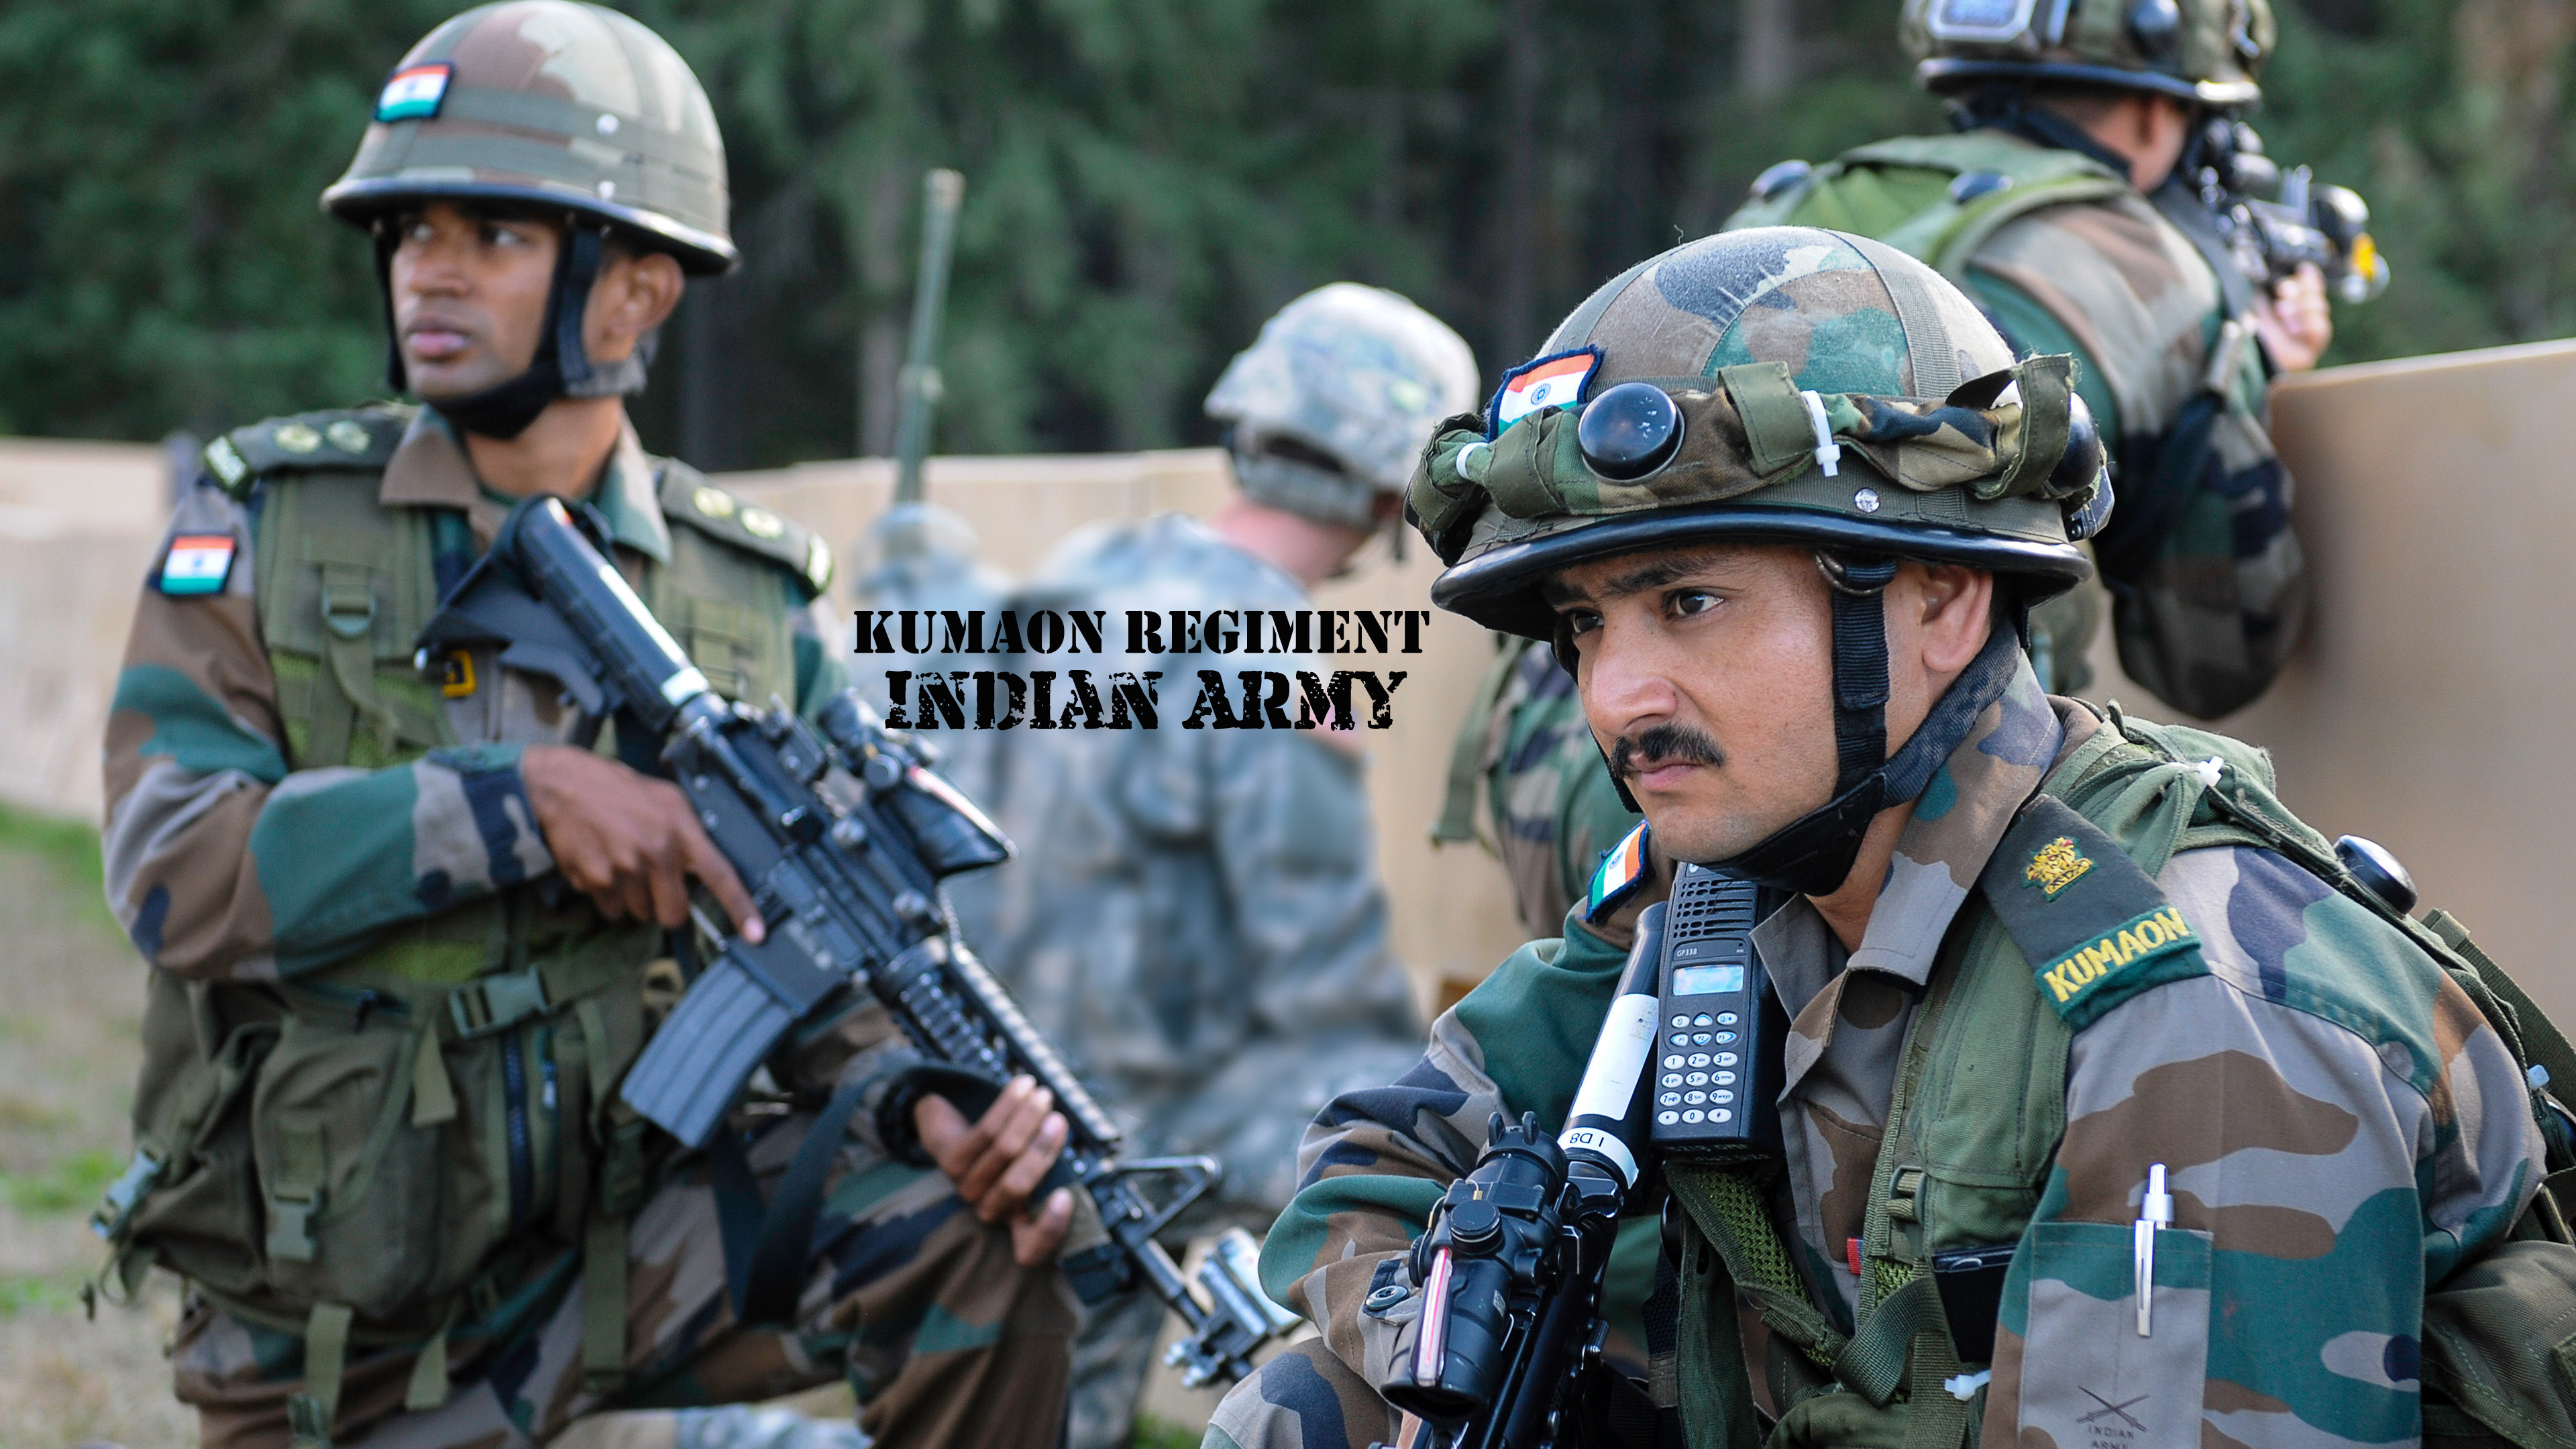 Wallpaper of Kumaon Regiment Indian Army in Training | HD ...